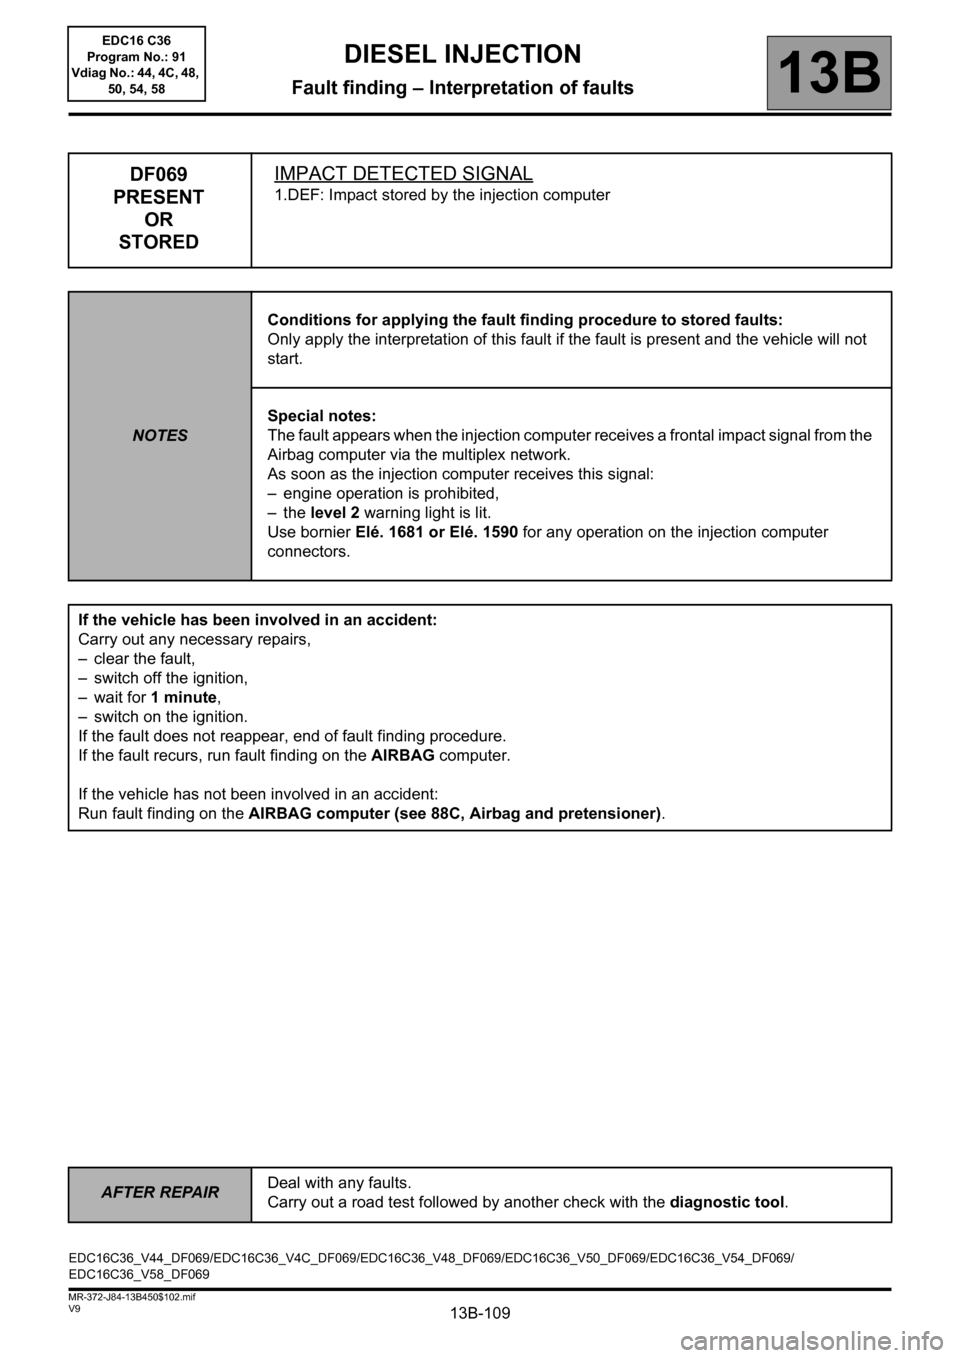 RENAULT SCENIC 2011 J95 / 3.G Engine And Peripherals EDC16C36 Workshop Manual, Page 109